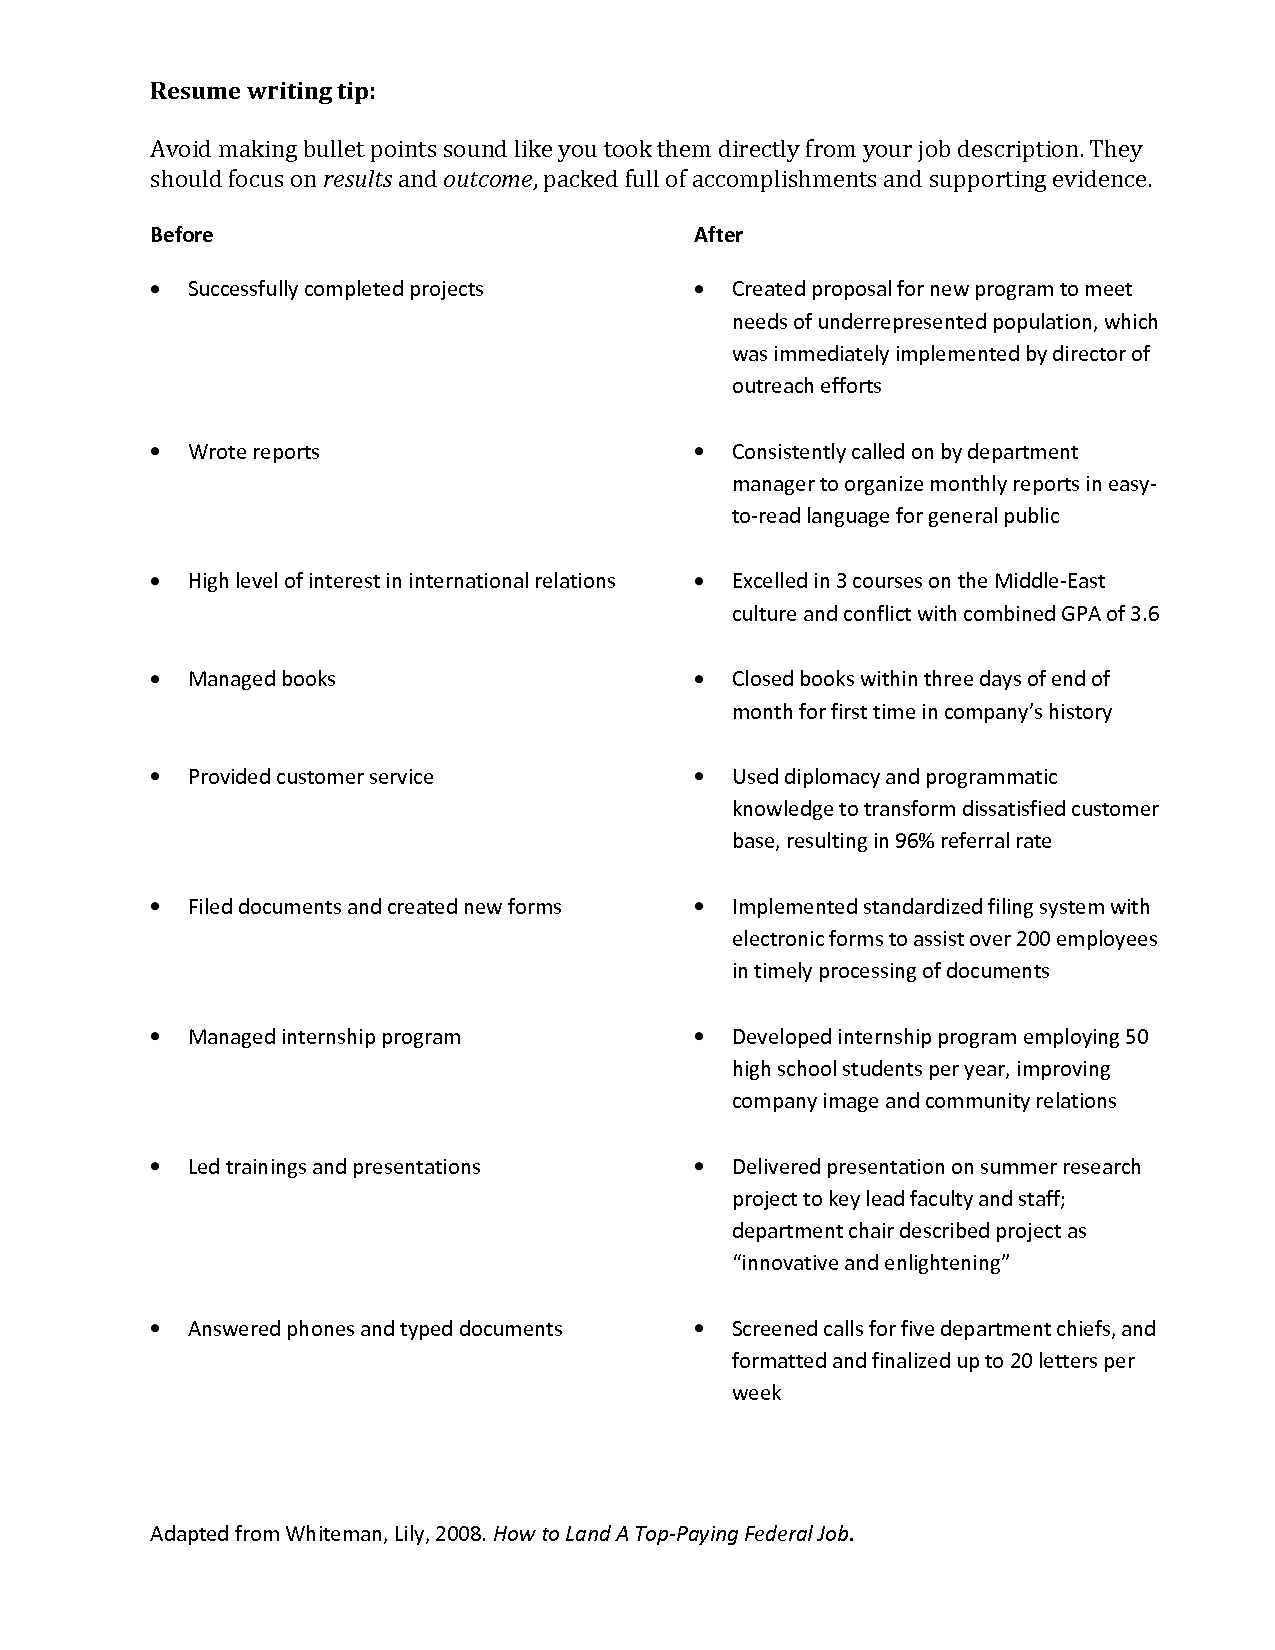 resume template for google resume writing coverwriting a resume cover letter examples - Resume Bullet Points